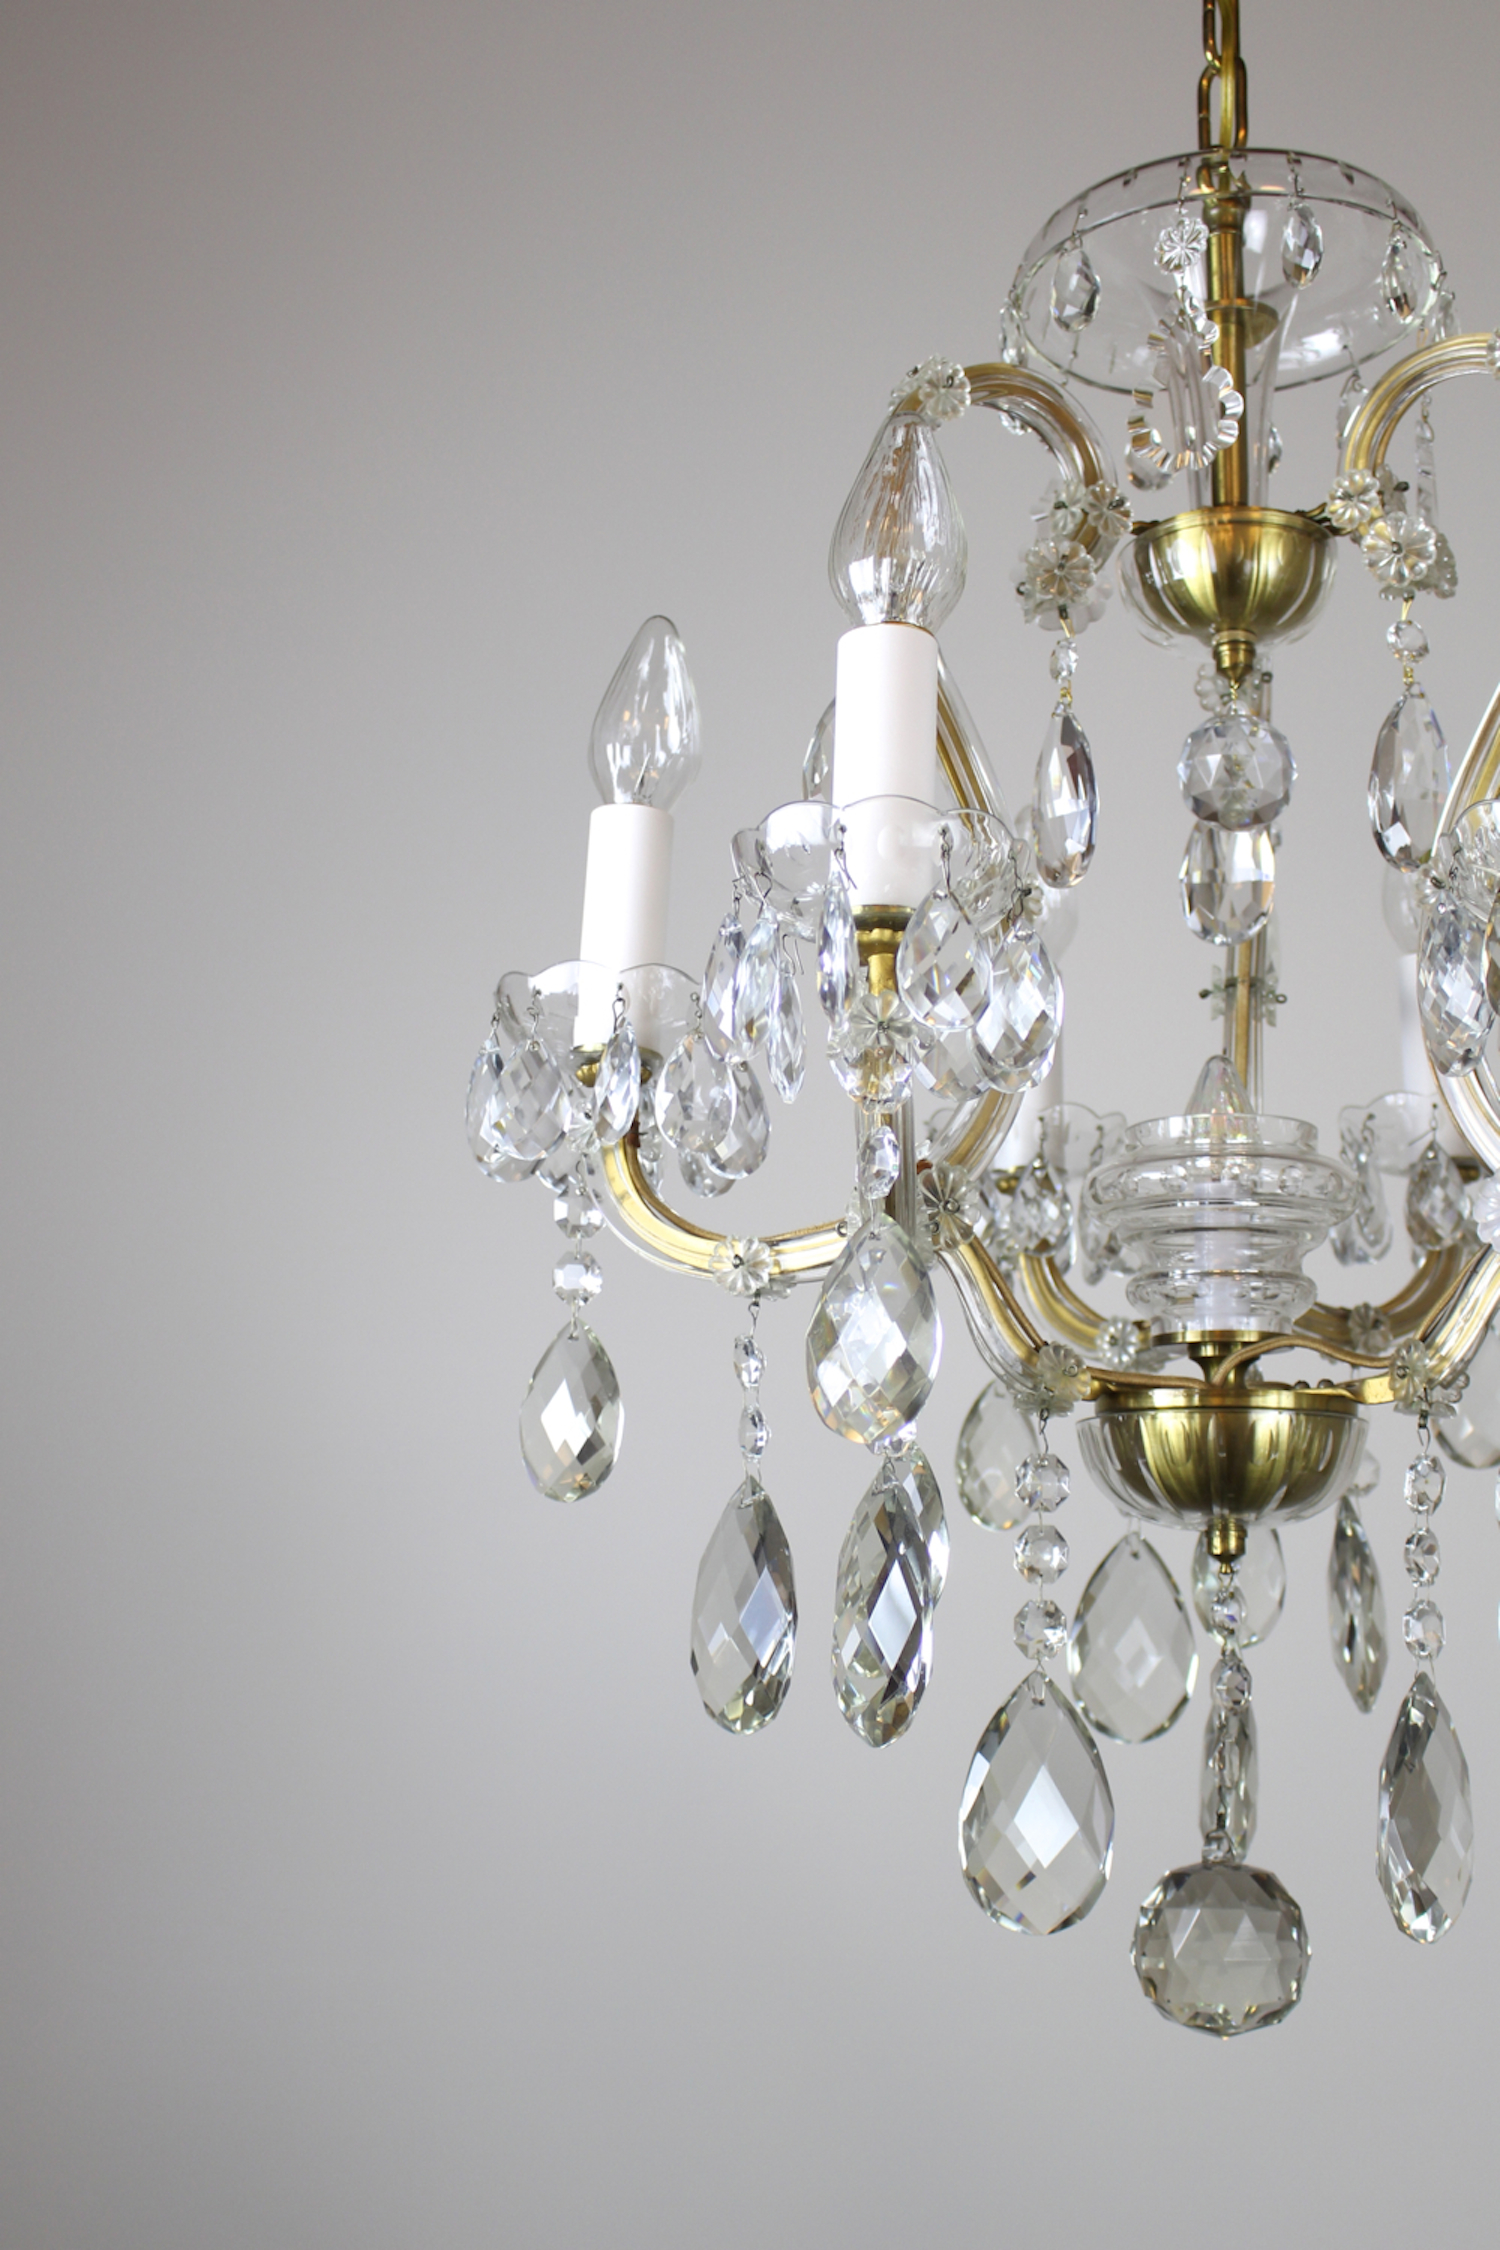 Louis xvi mary teresa style cut crystal chandelier see mozeypictures Choice Image